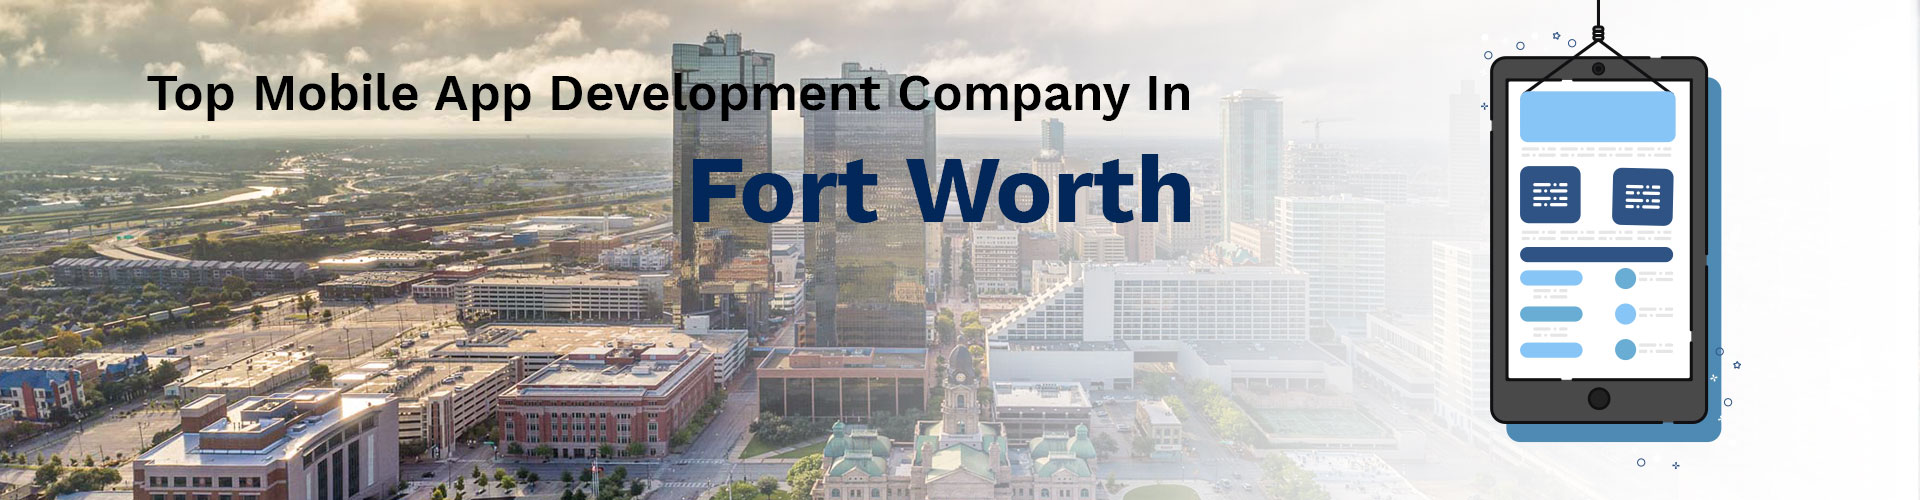 mobile app development company fort worth